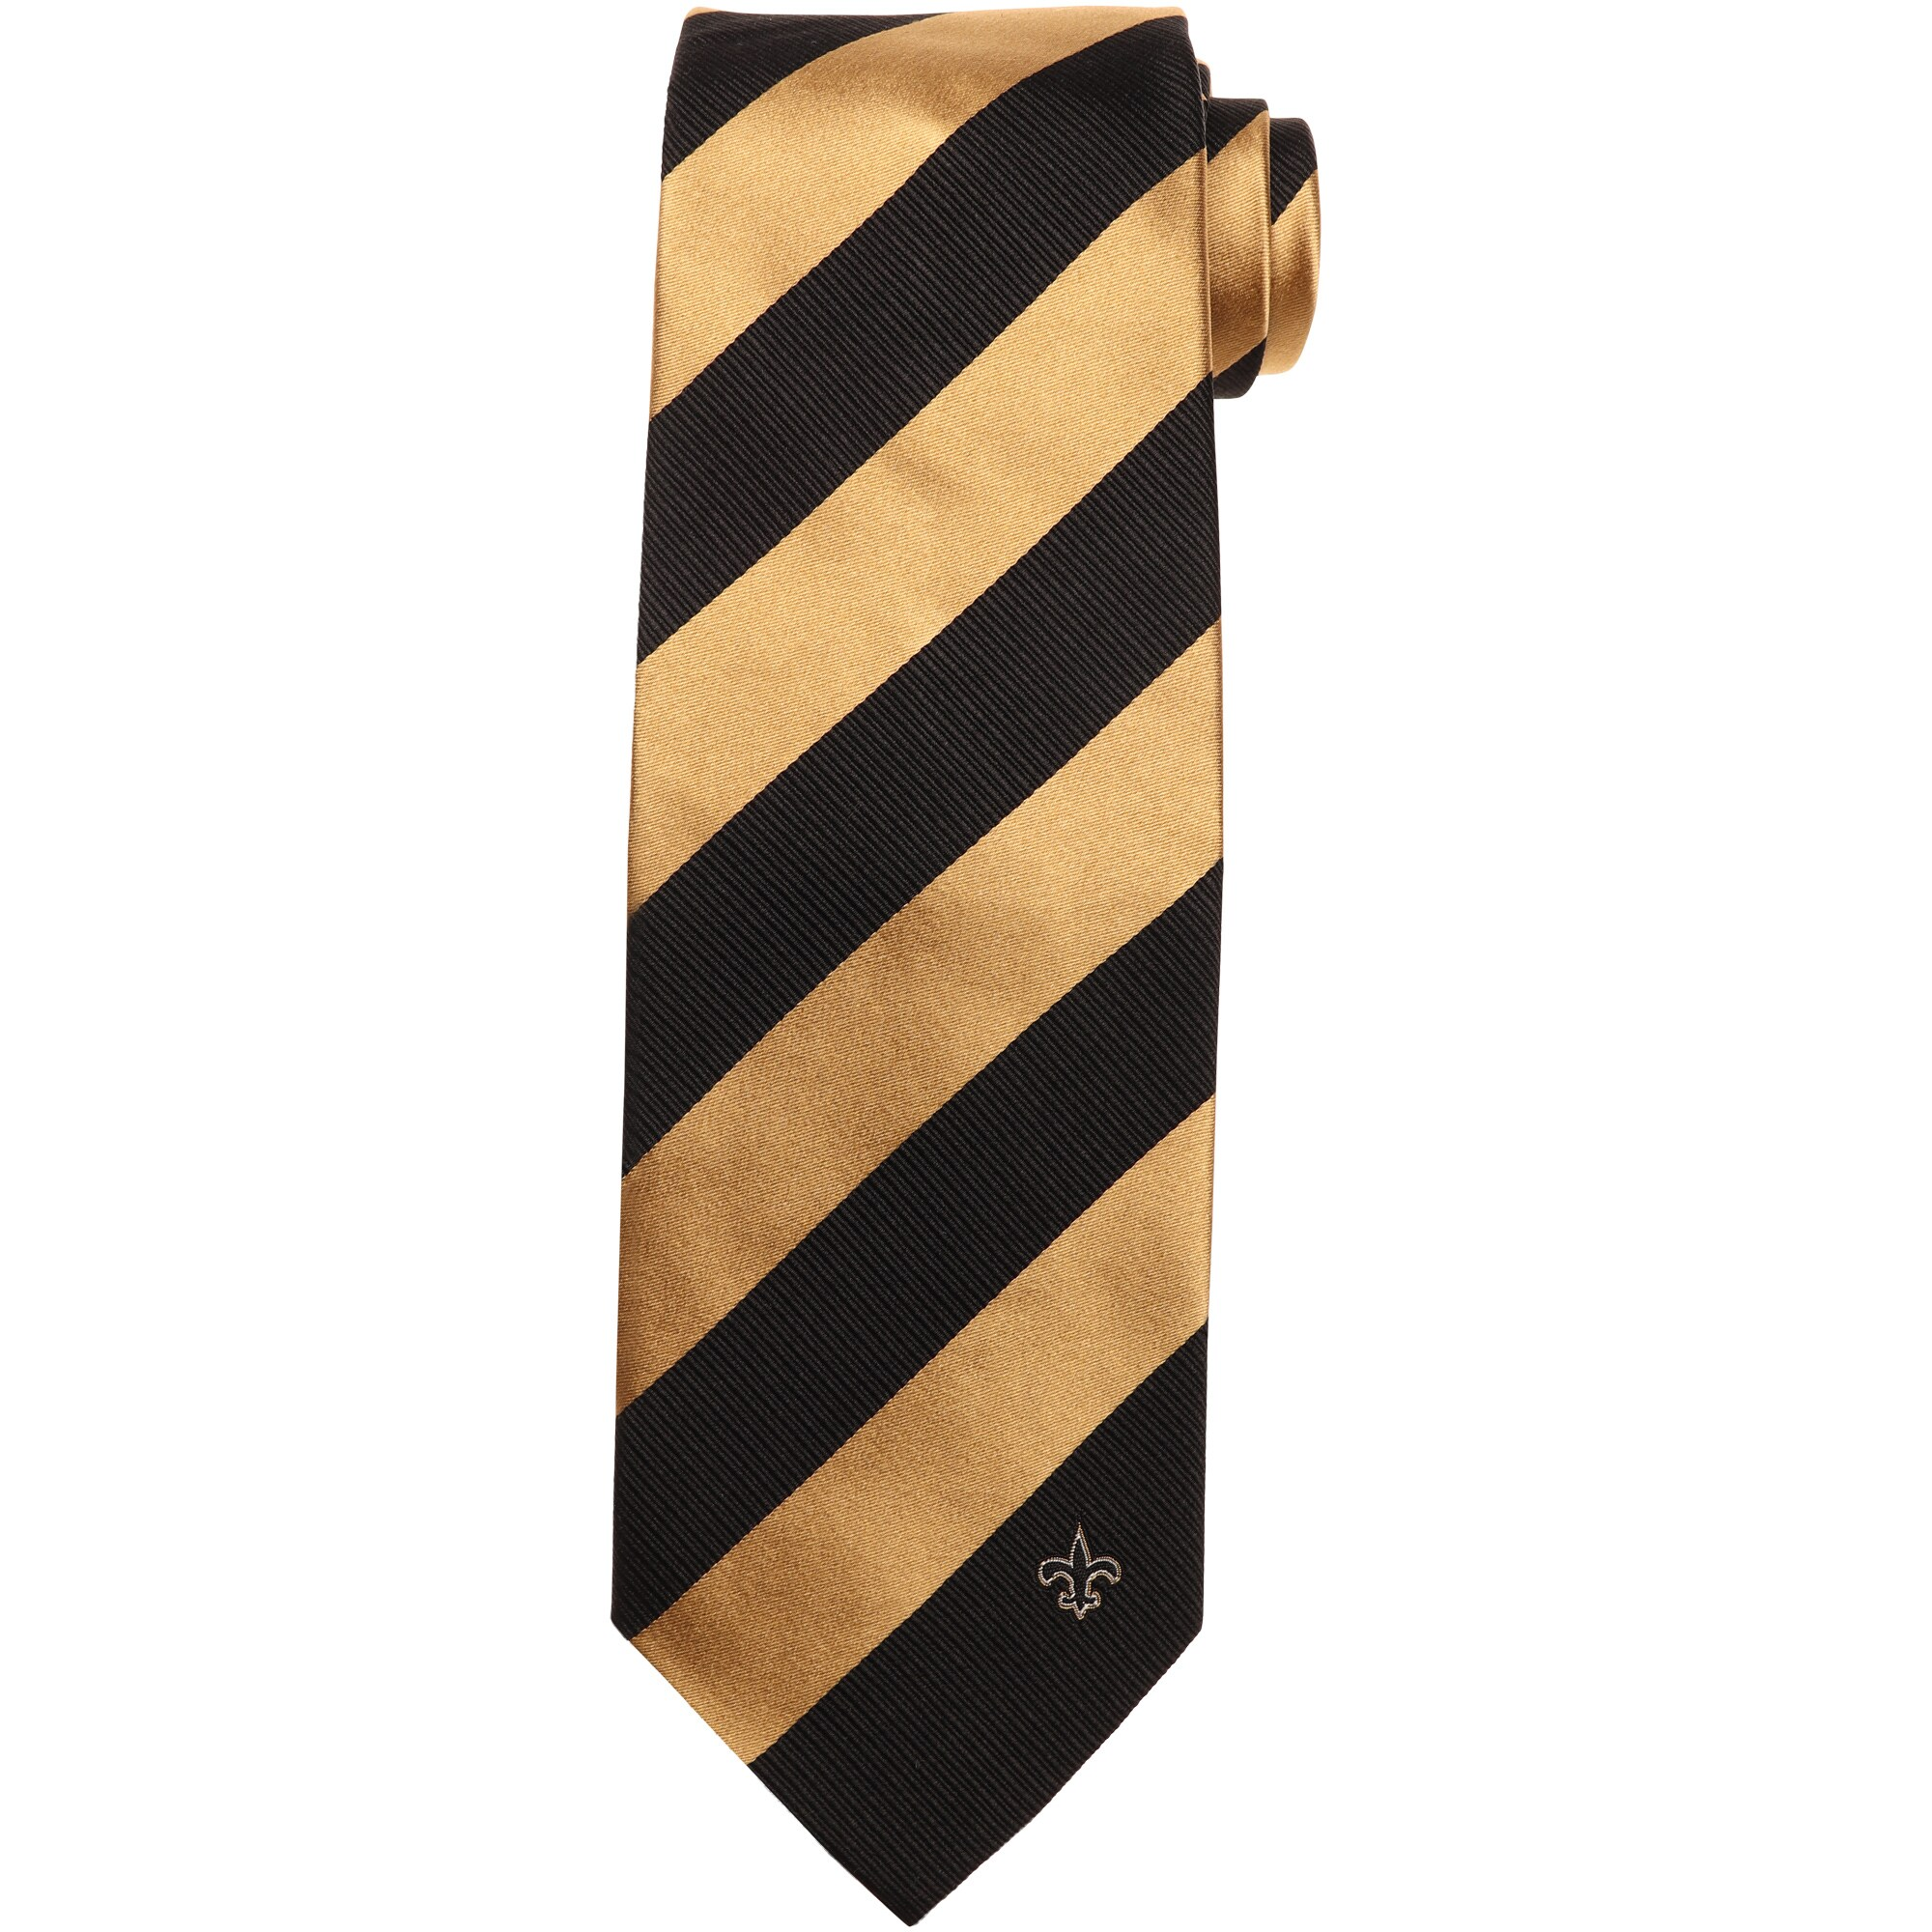 New Orleans Saints Regiment Woven Silk Tie